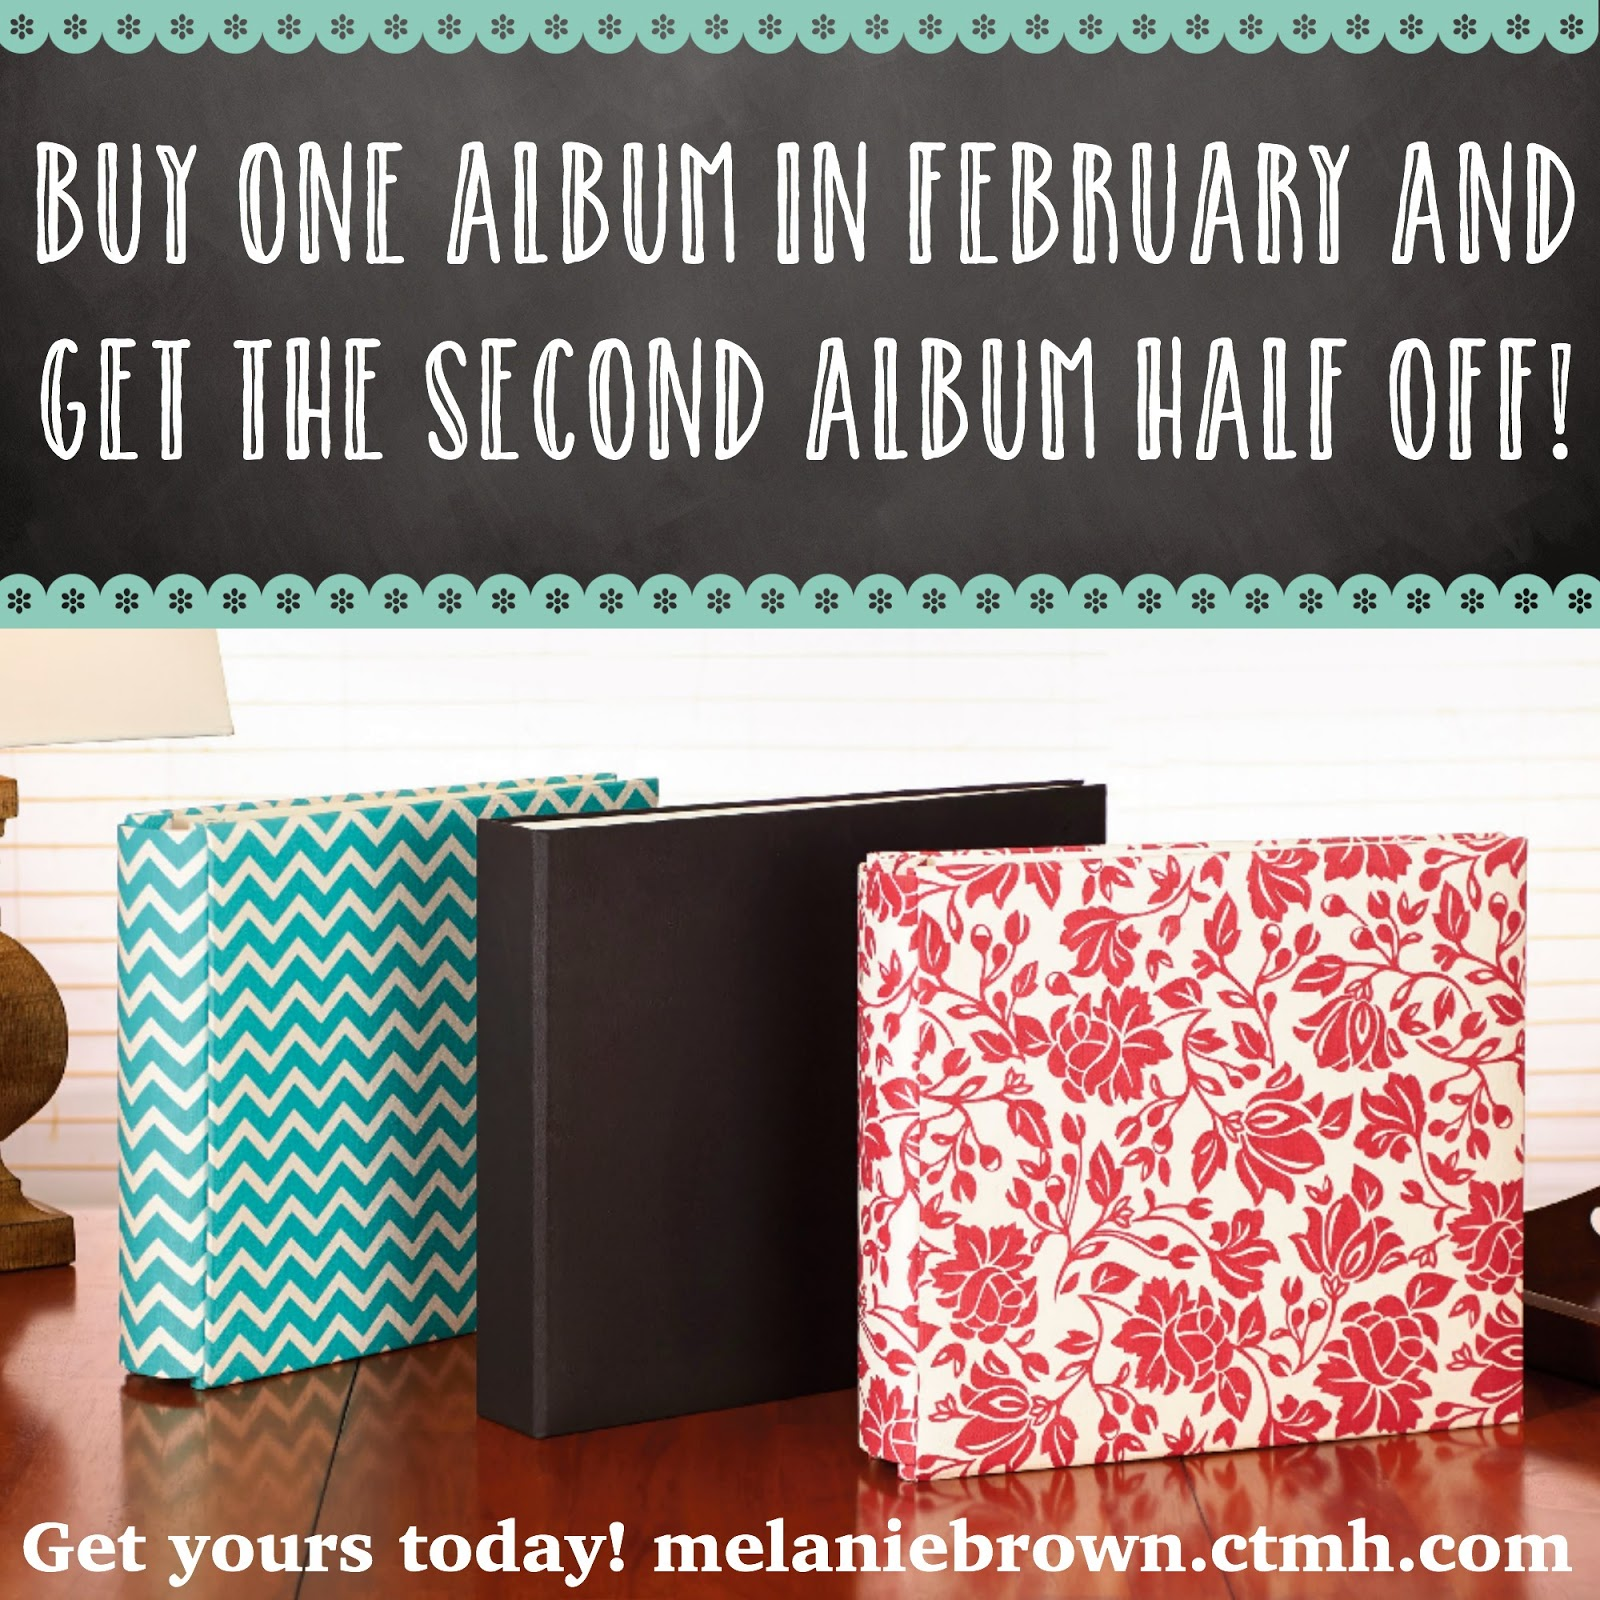 Buy one album get the secomd for free in February!